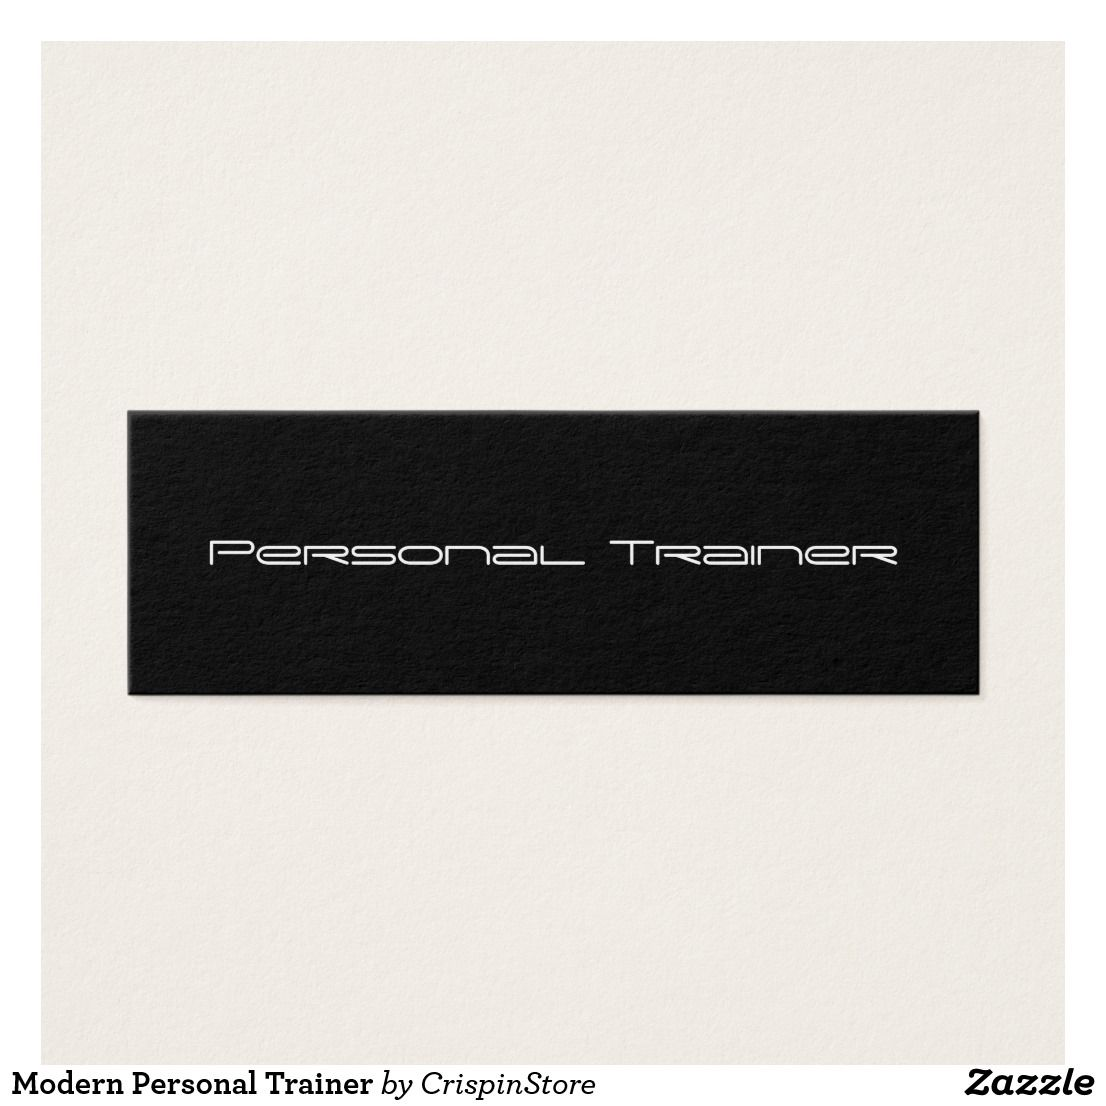 Modern Personal Trainer minimalist business card. | Businesscard ...